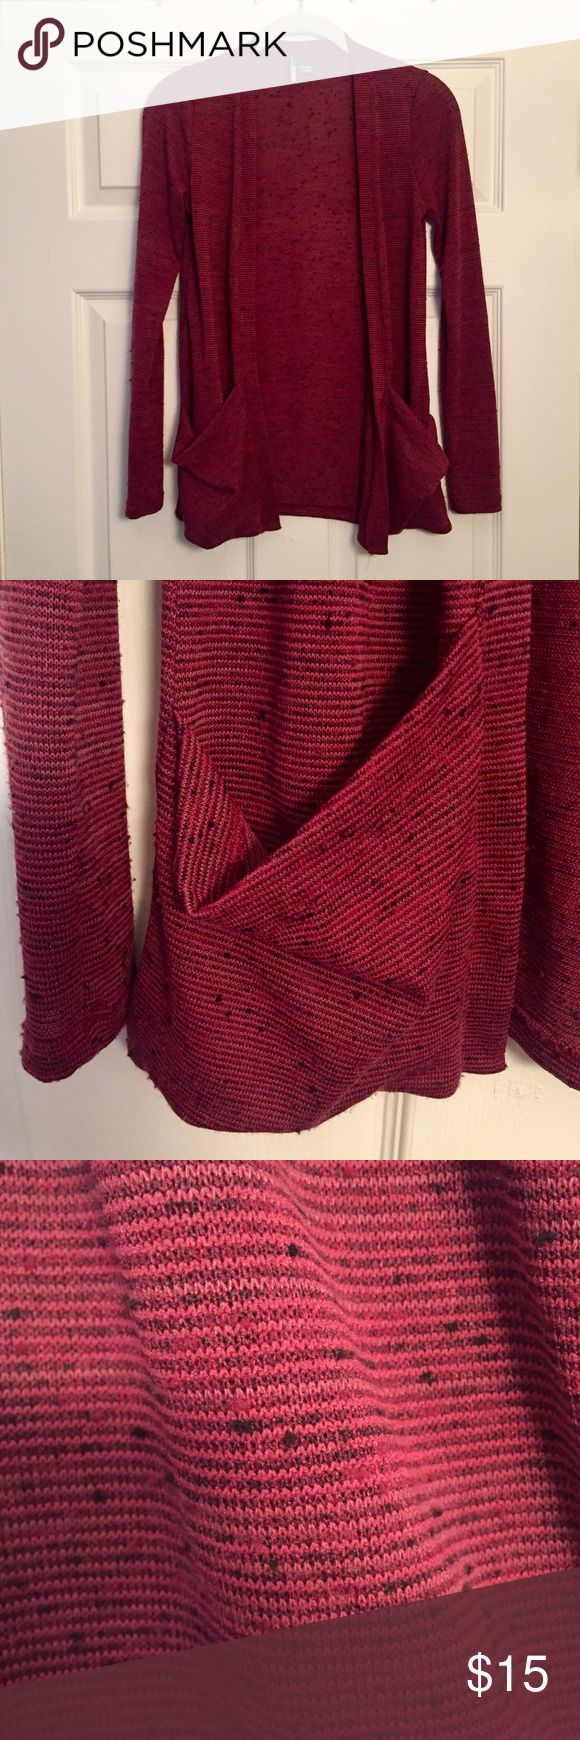 Urban Outfitters Cardigan Barely worn • in new condition • no pilling or damage • 2 front pockets • comfy material • color: maroon • perfect over a tee for a casual outfit • 💁 open to all offers ⚡️ fast shipping Urban Outfitters Sweaters Cardigans